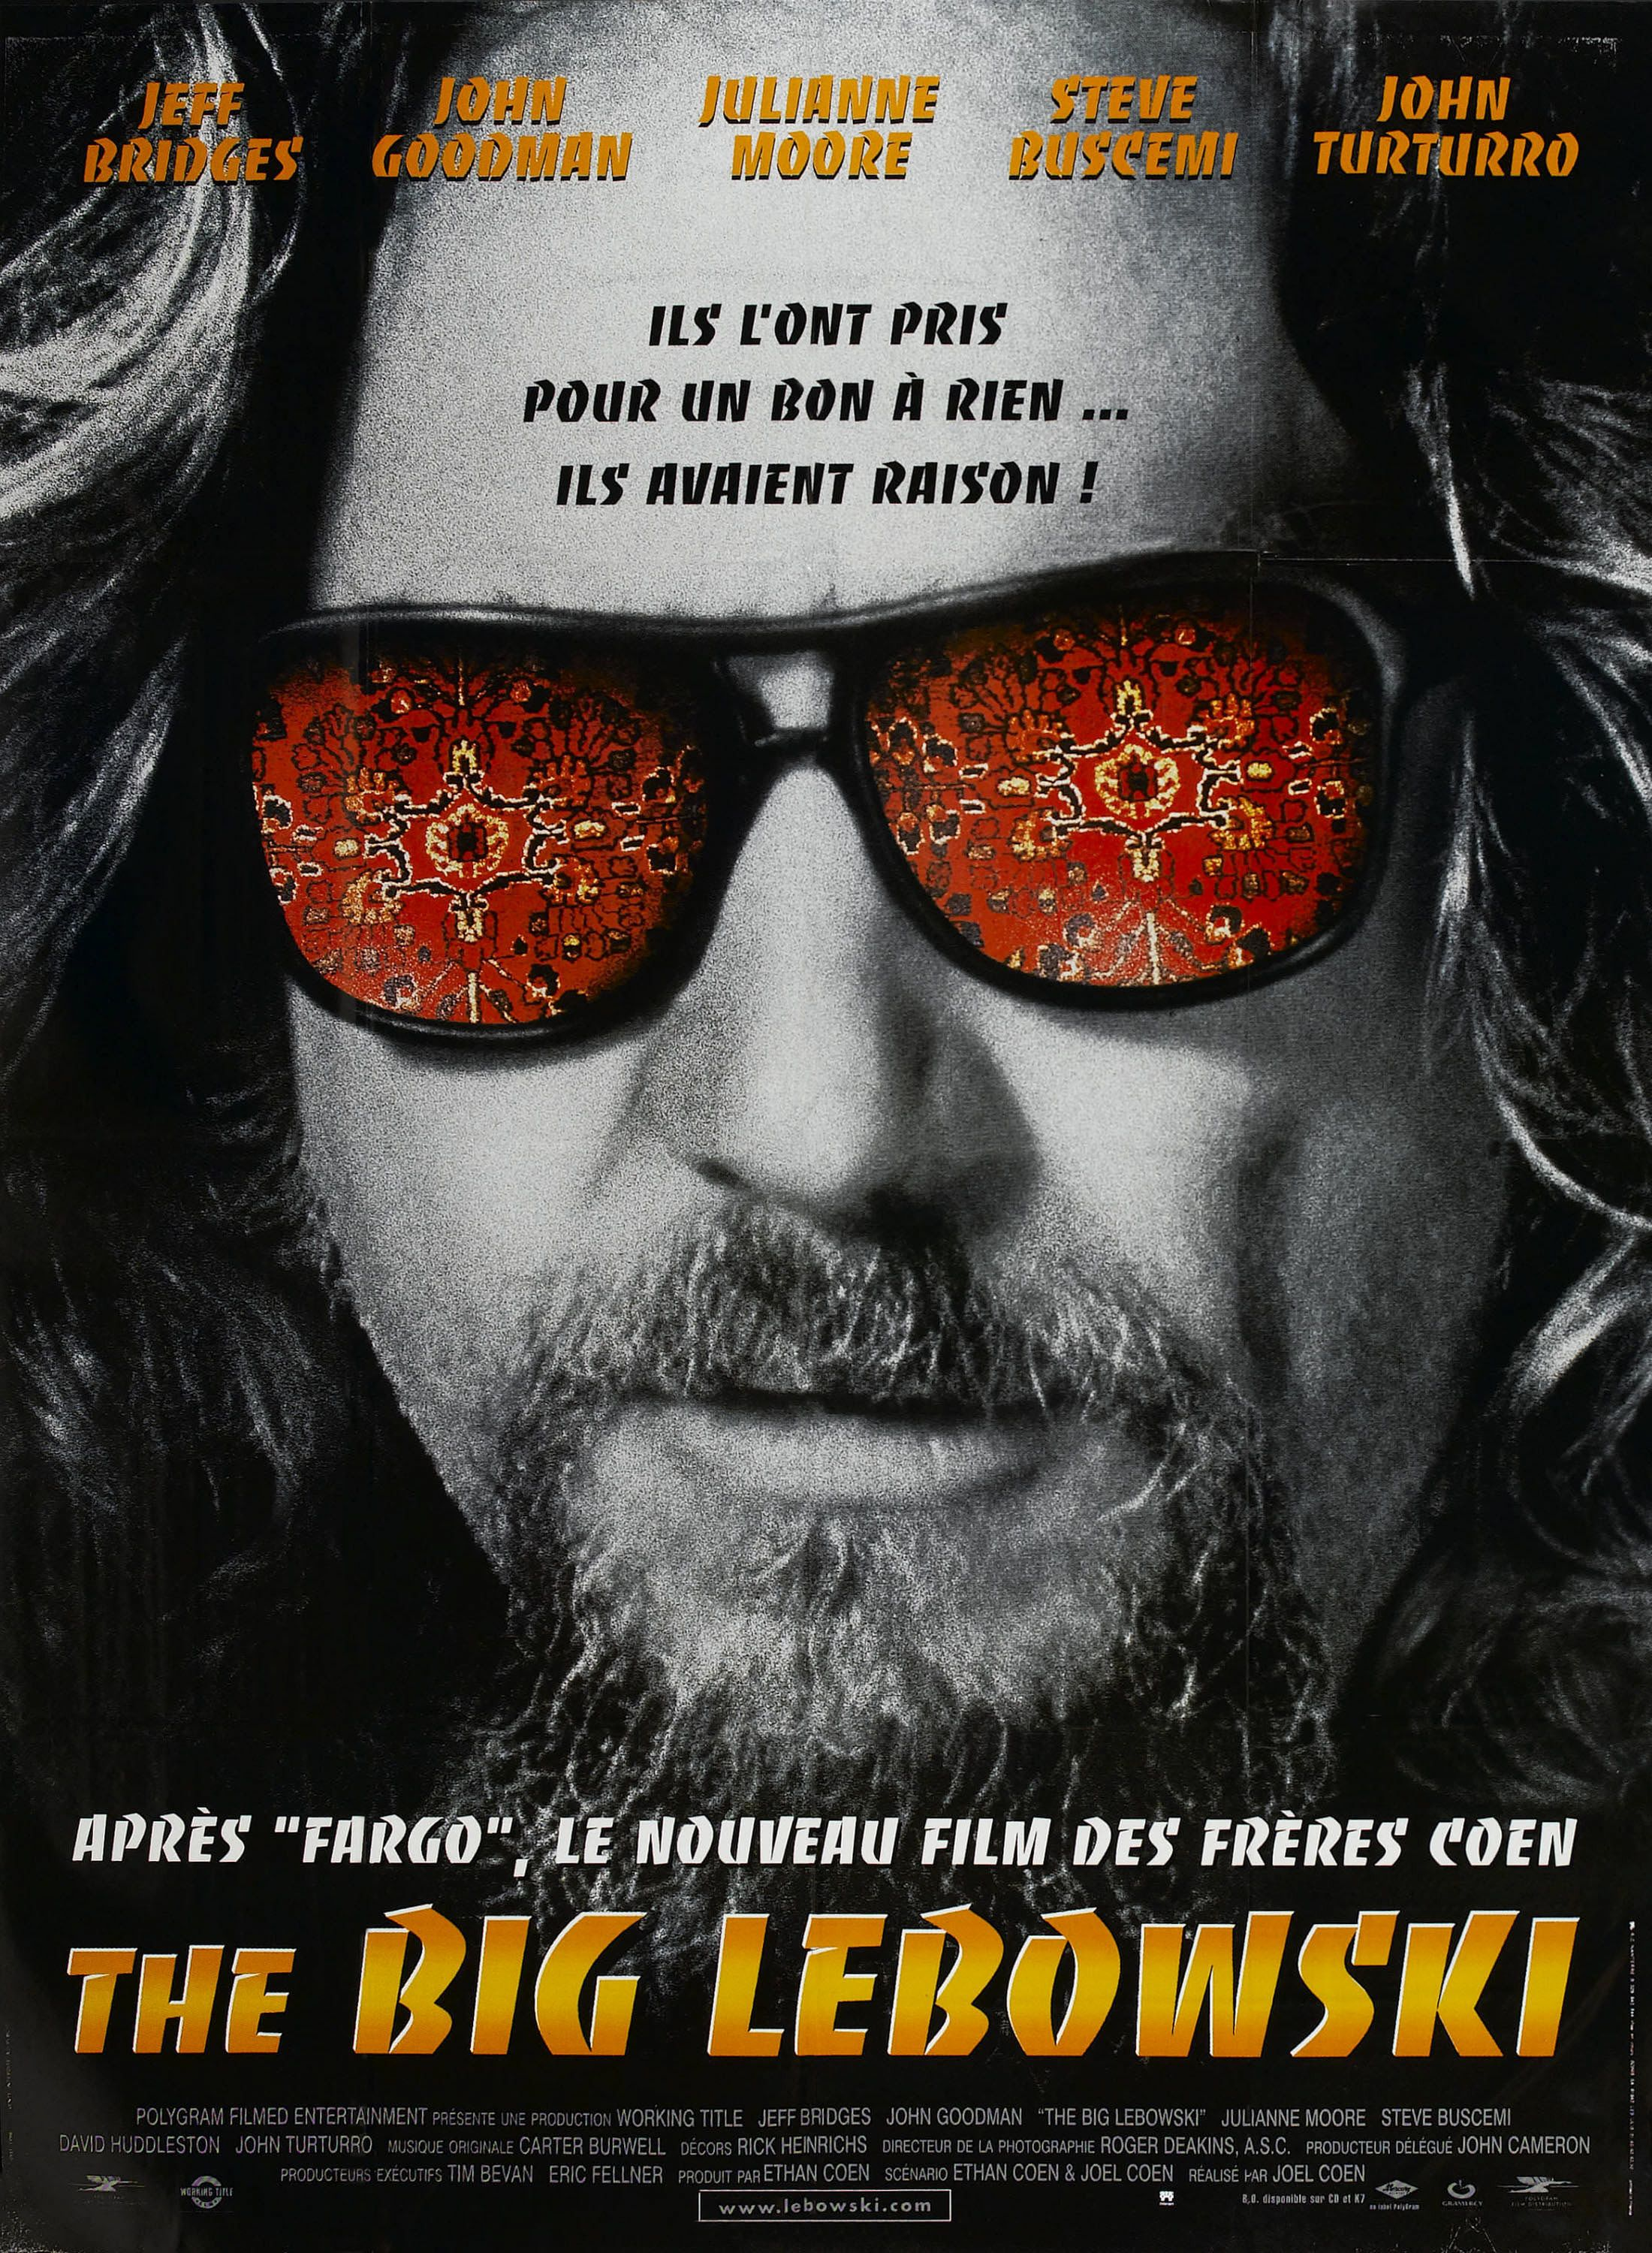 The Big Lebowski - Joel Coen et Ethan Coen - SensCritique